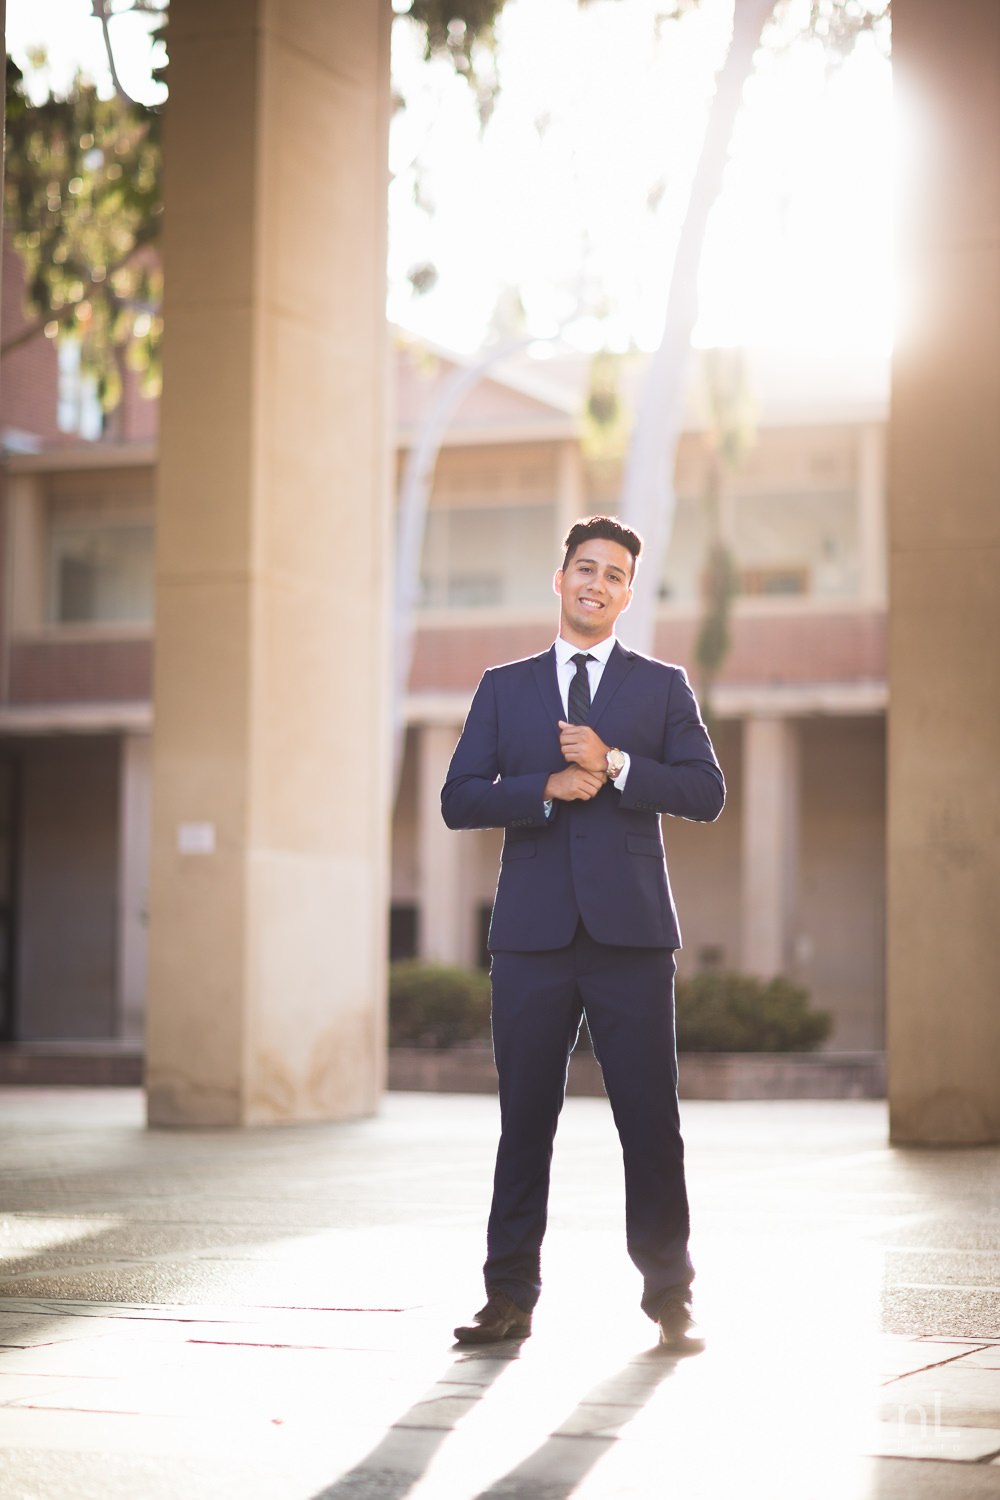 UCLA Class of 2019 graduate wearing suit and tie and graduation sash looking serious in front of Young Hall.